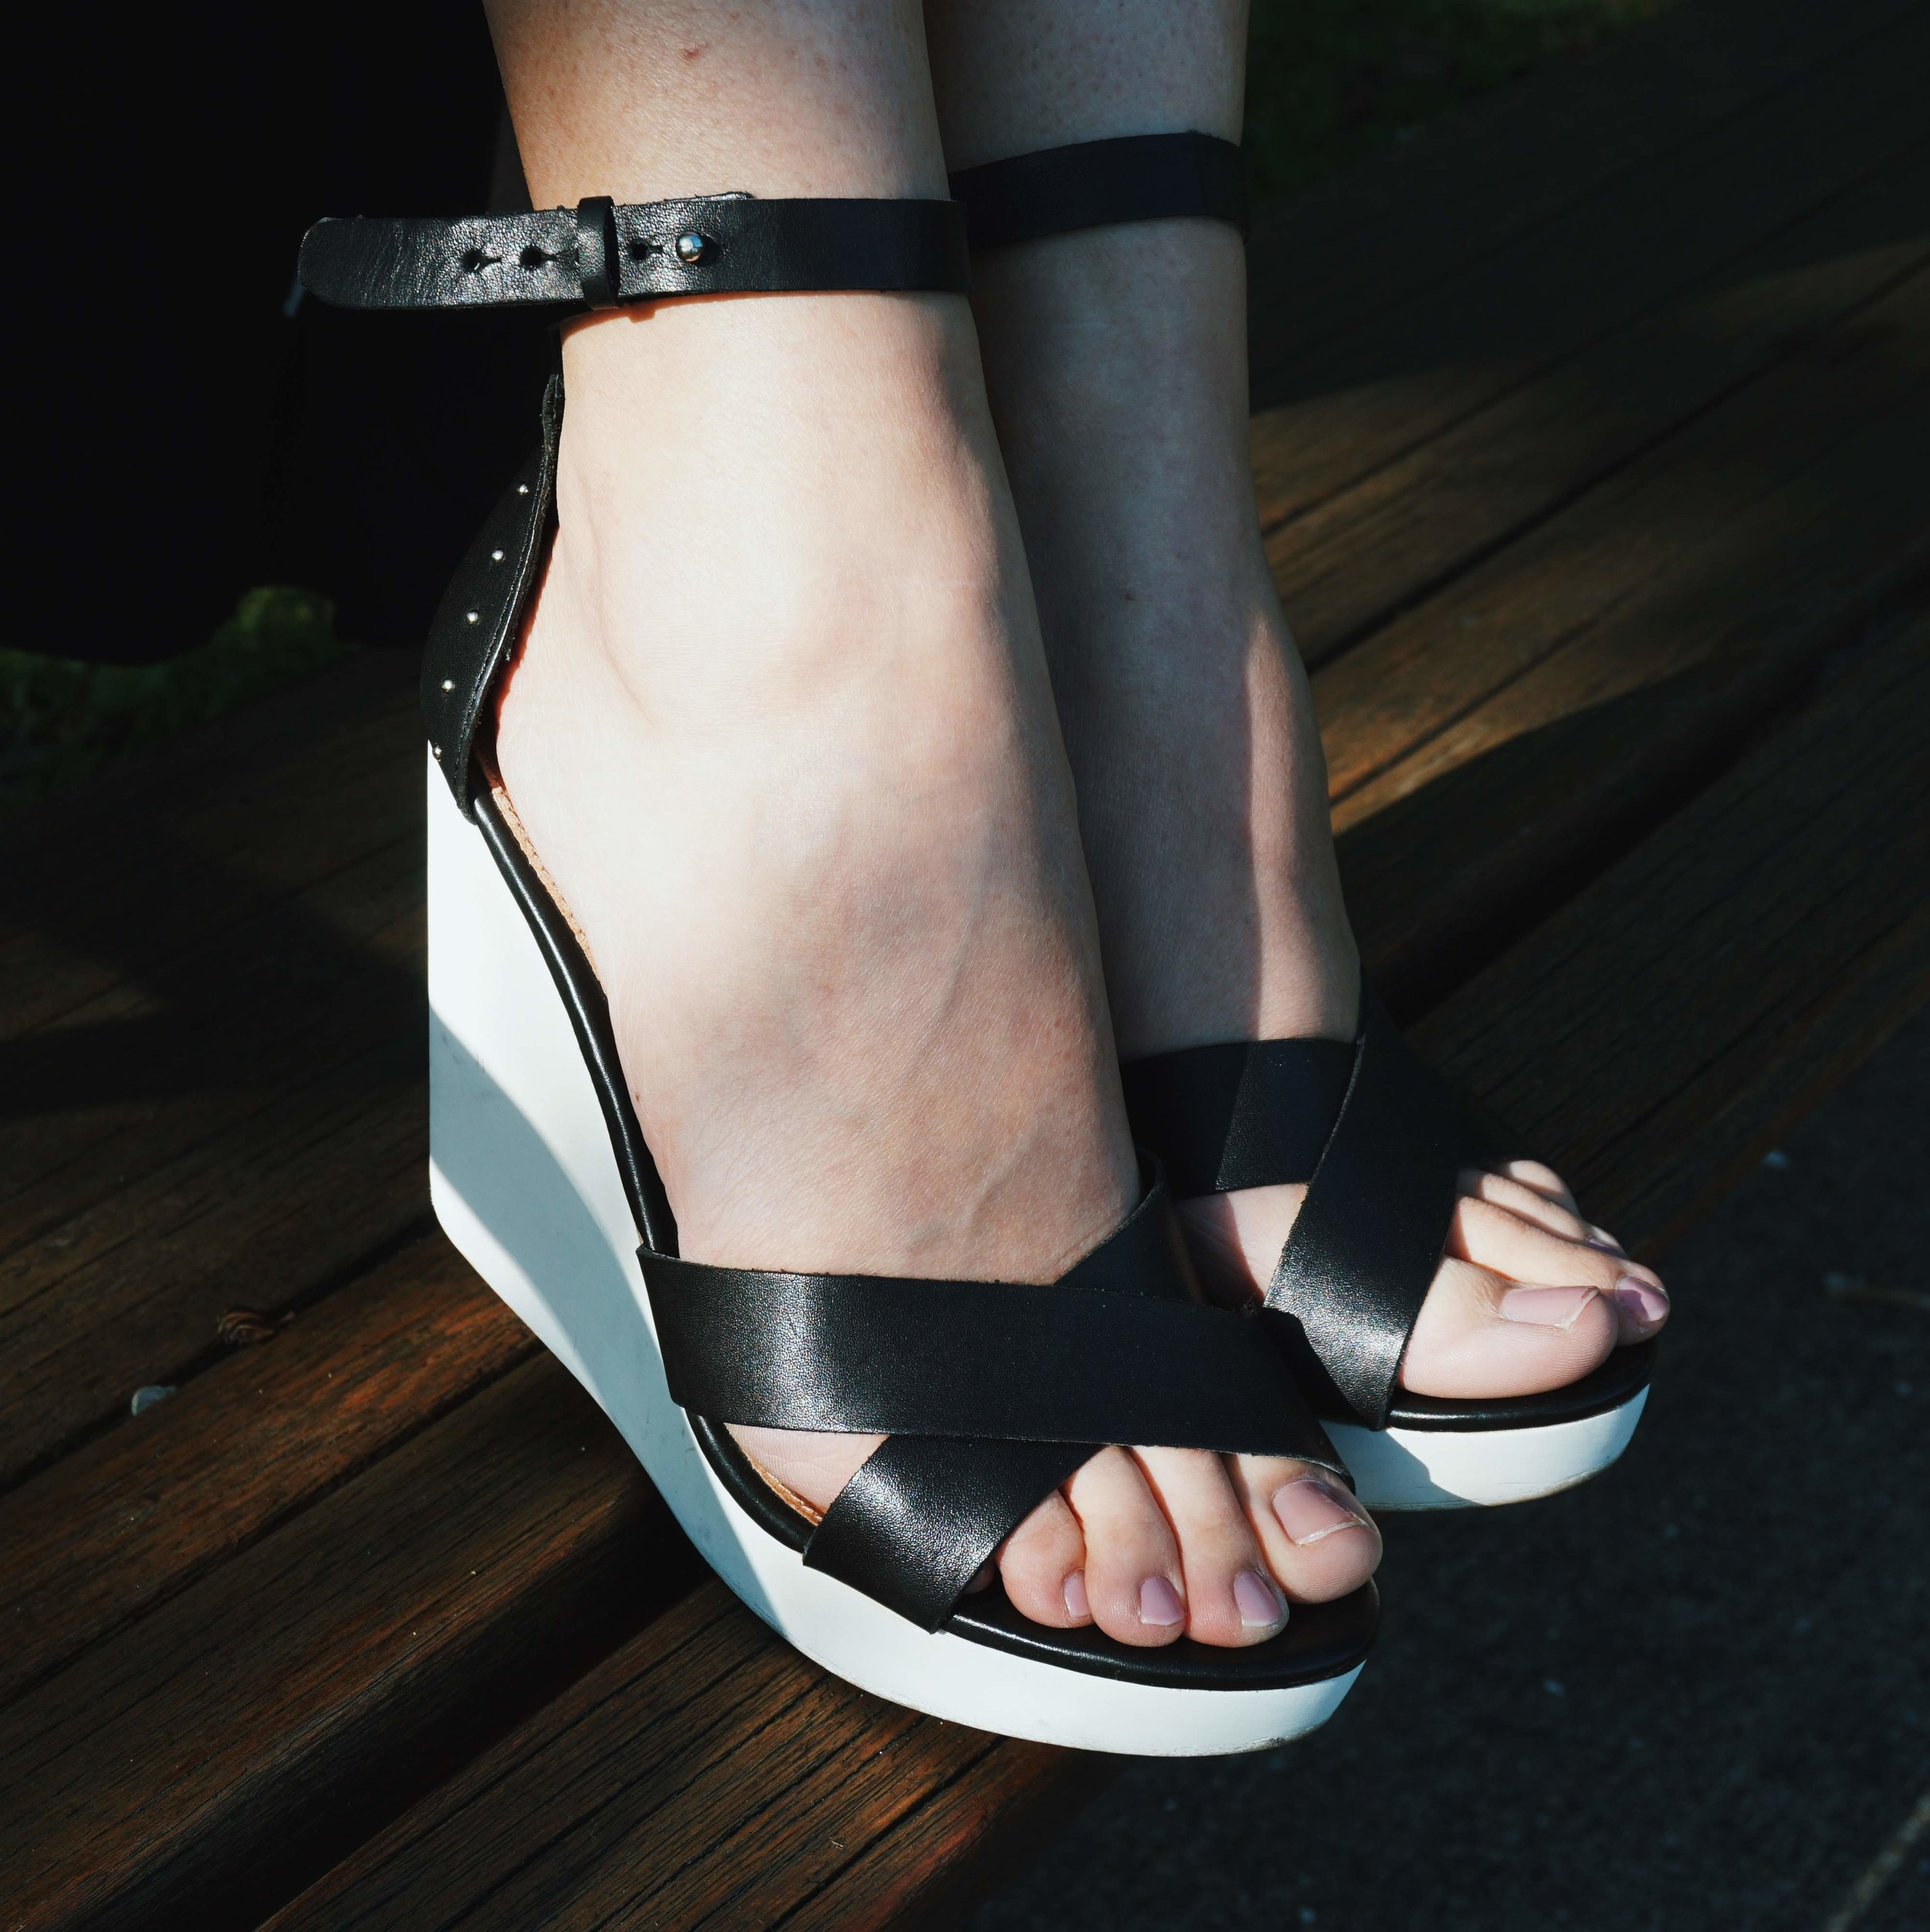 A photo of shoes: black and white wedges.